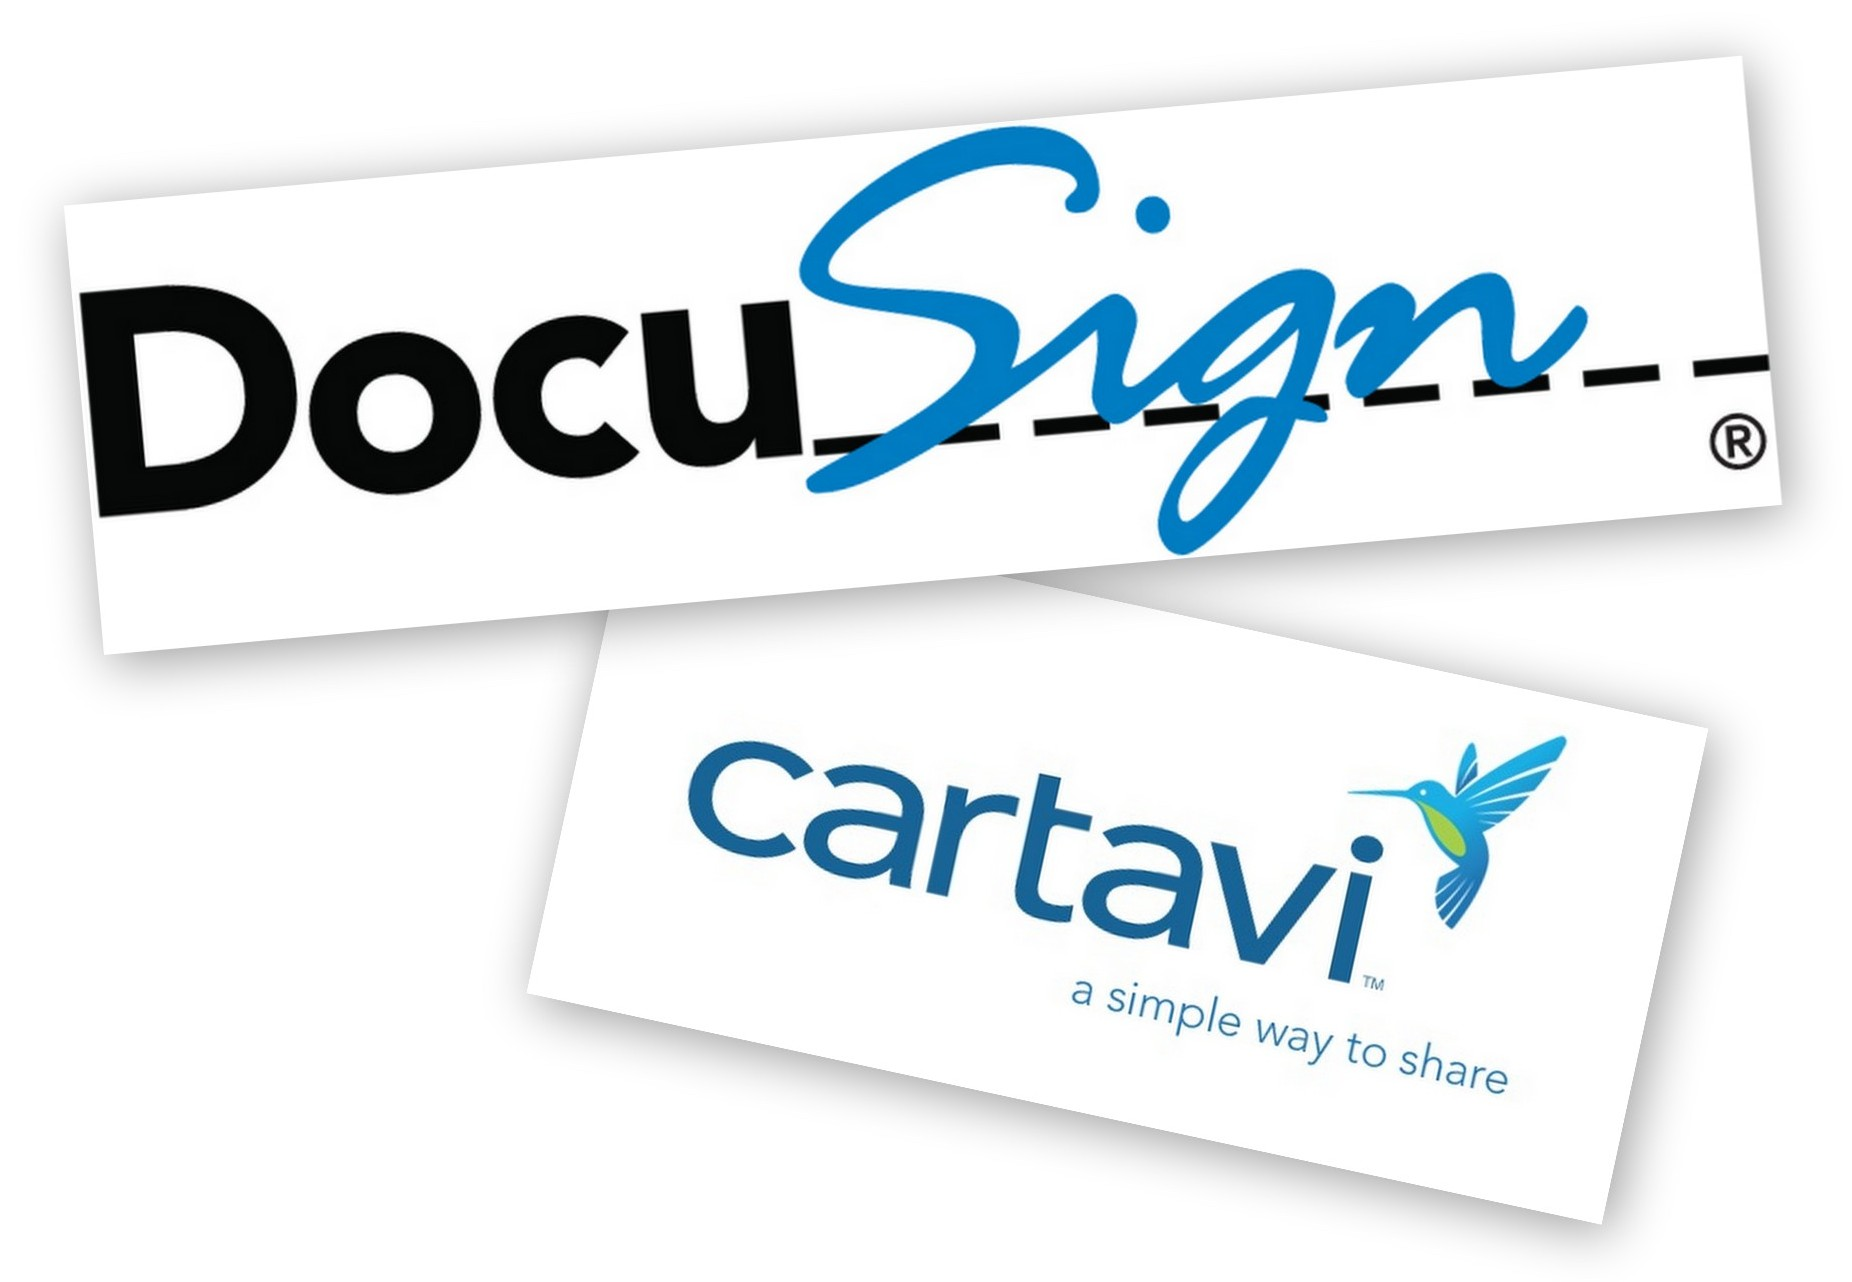 DocuSign's e-signatures, Cartavi transaction management platform now available as a bundle